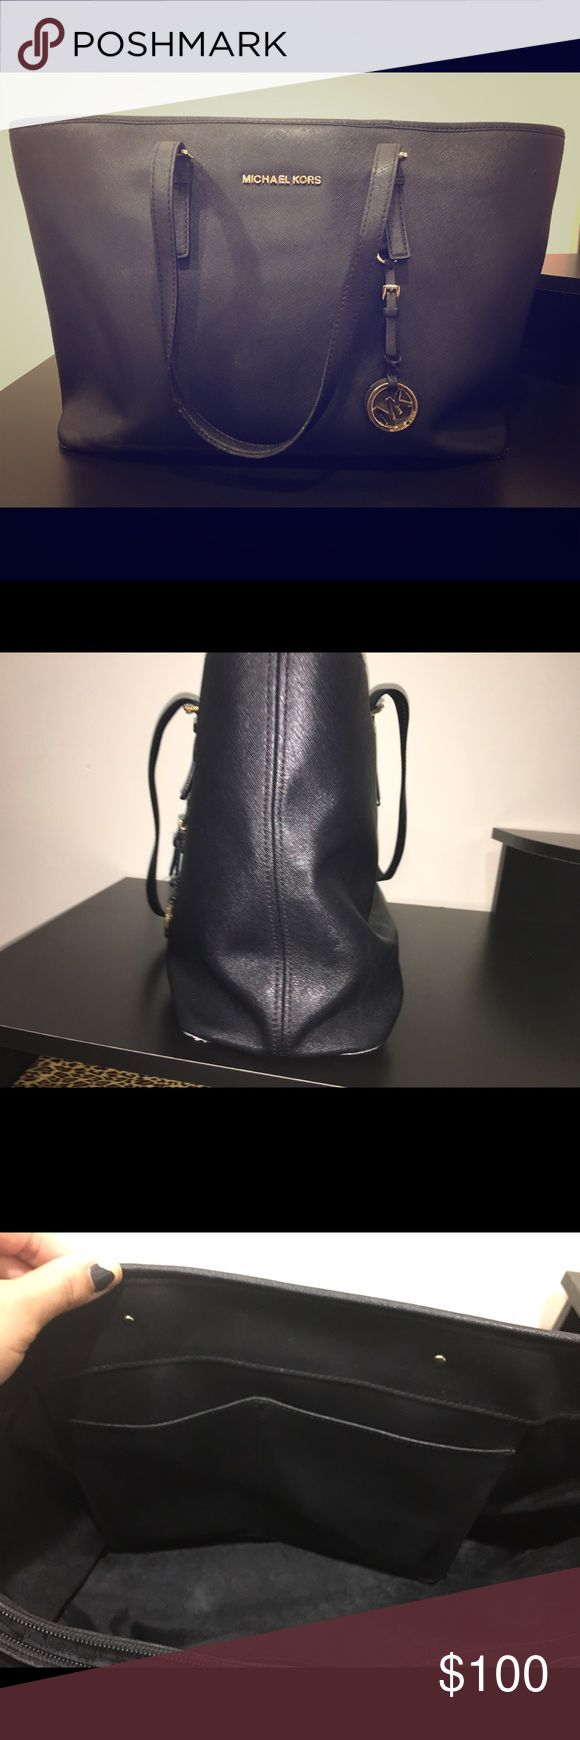 Authentic Michael Kors Jetset bag Black Michael Kors Jetset bag. Used, in decent condition. Minor tears to the lining at the bottom and a bit out of shape from use but hardly noticeable when in use. Michael Kors Bags Shoulder Bags